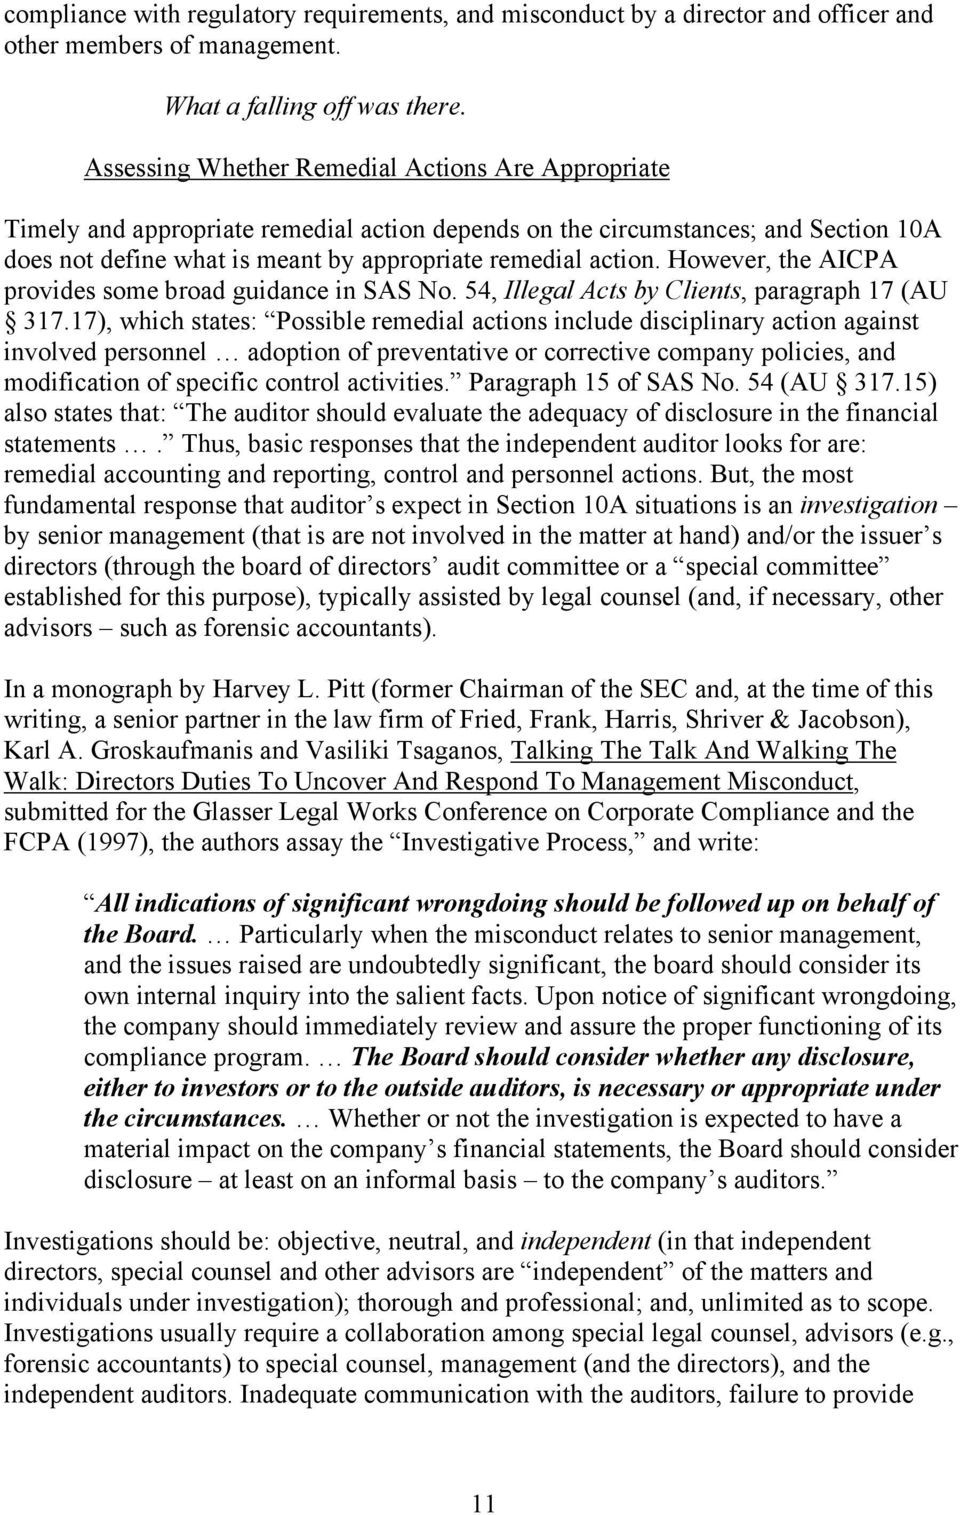 However, the AICPA provides some broad guidance in SAS No. 54, Illegal Acts by Clients, paragraph 17 (AU 317.